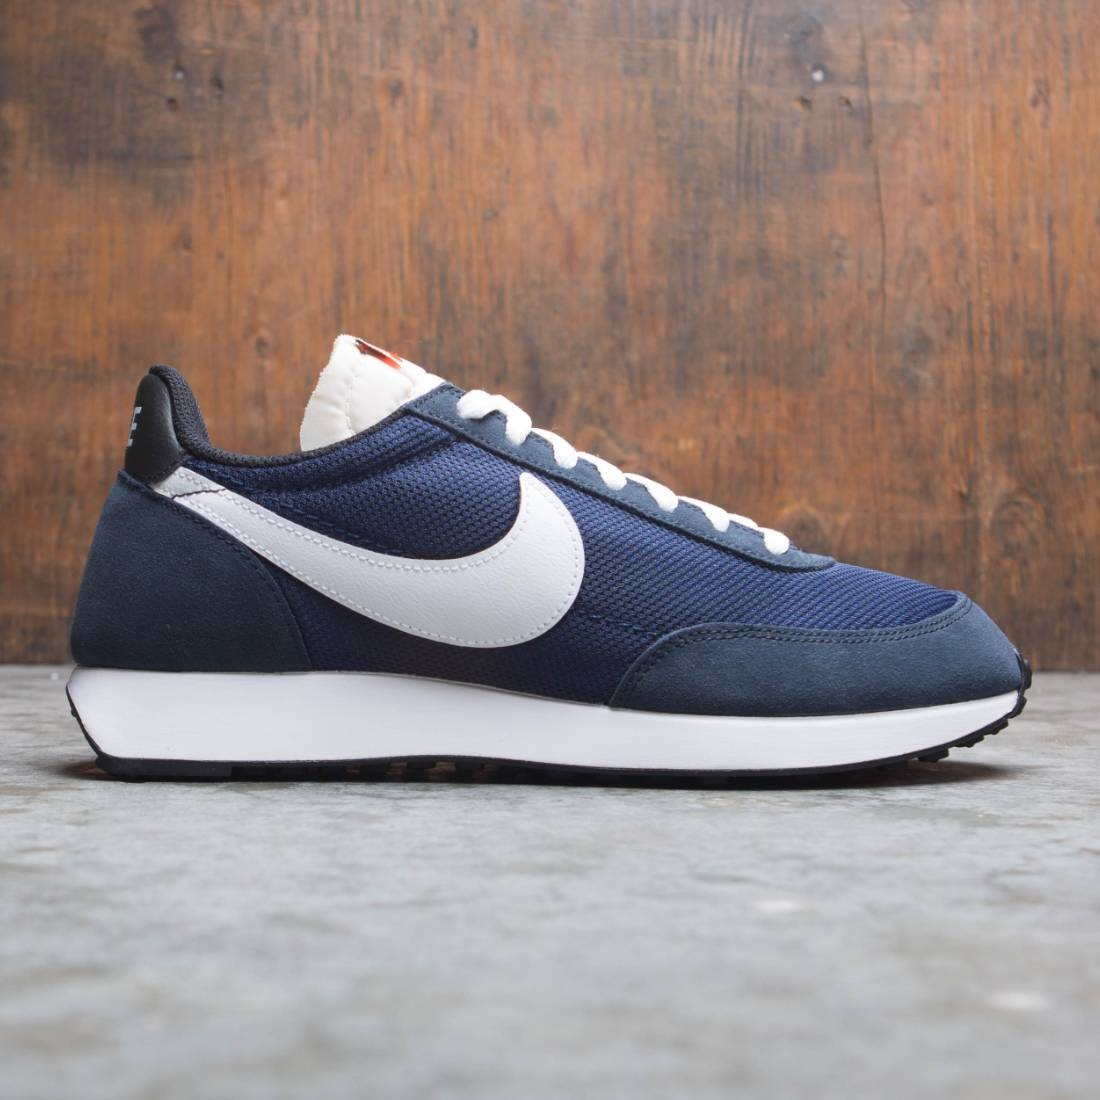 Nike Men Air Tailwind 79 (dark obsidian / white-midnight navy-black)